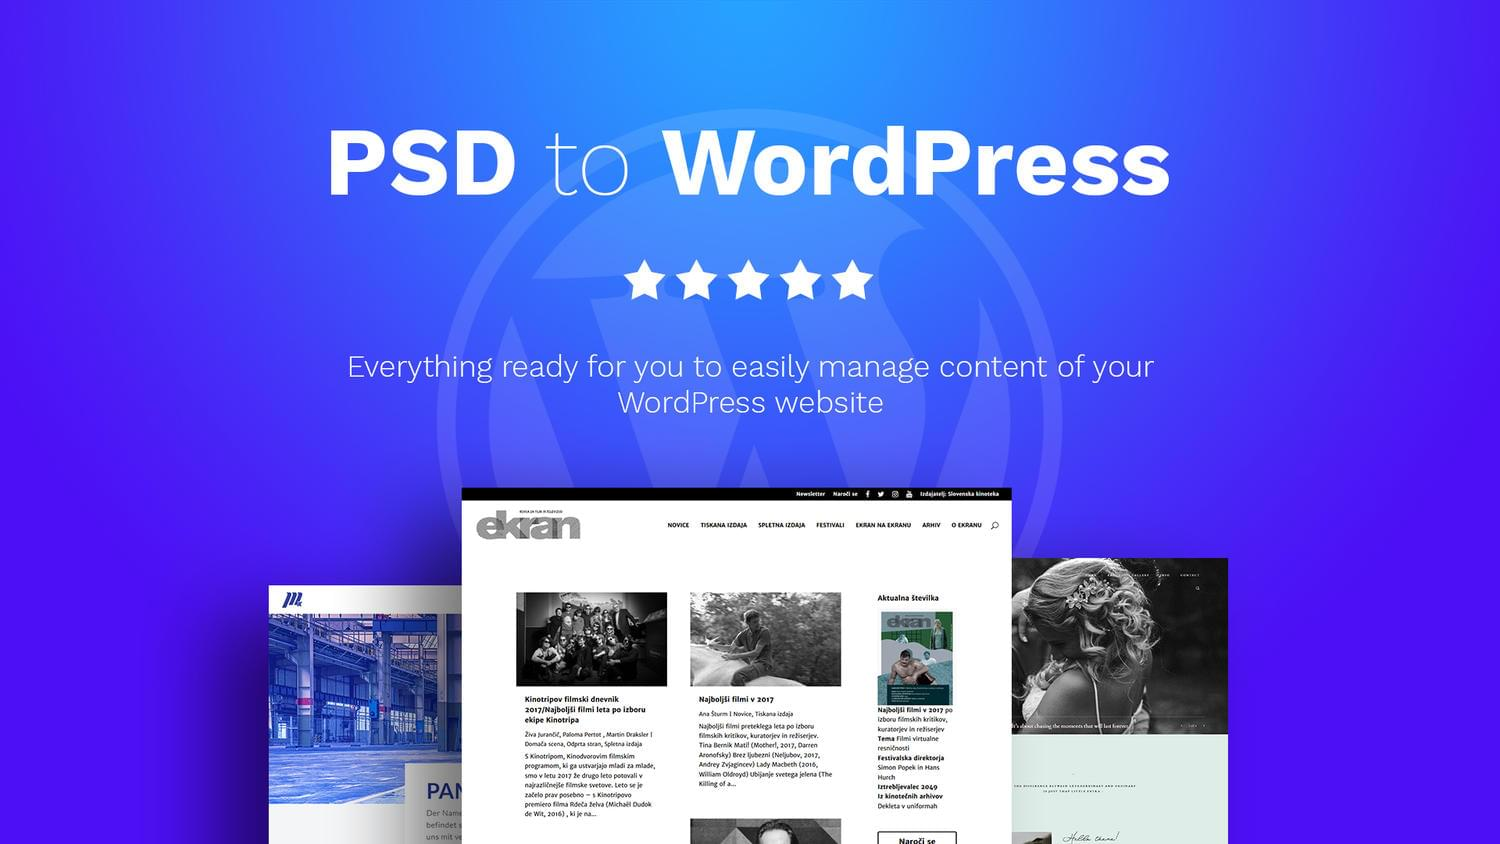 PSD to WordPress Website by OliverMarcetic - 111929